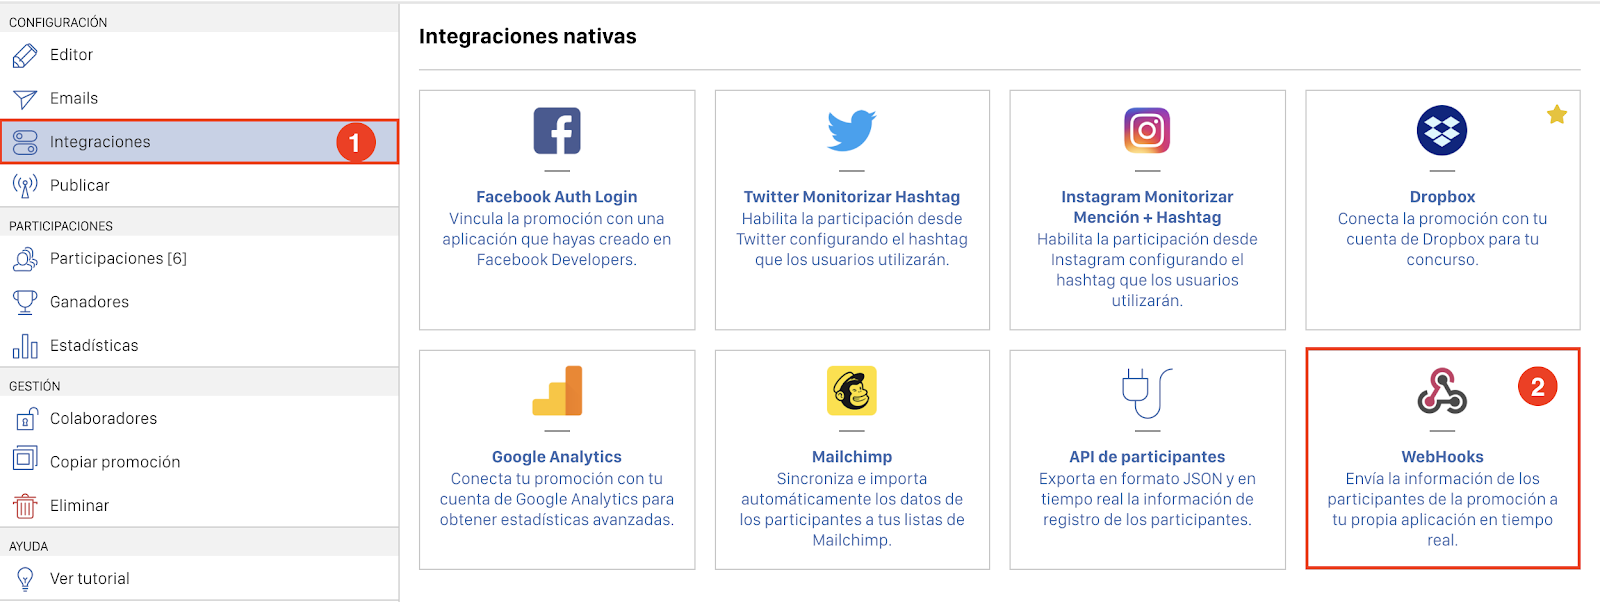 Integraciones_webhook.png